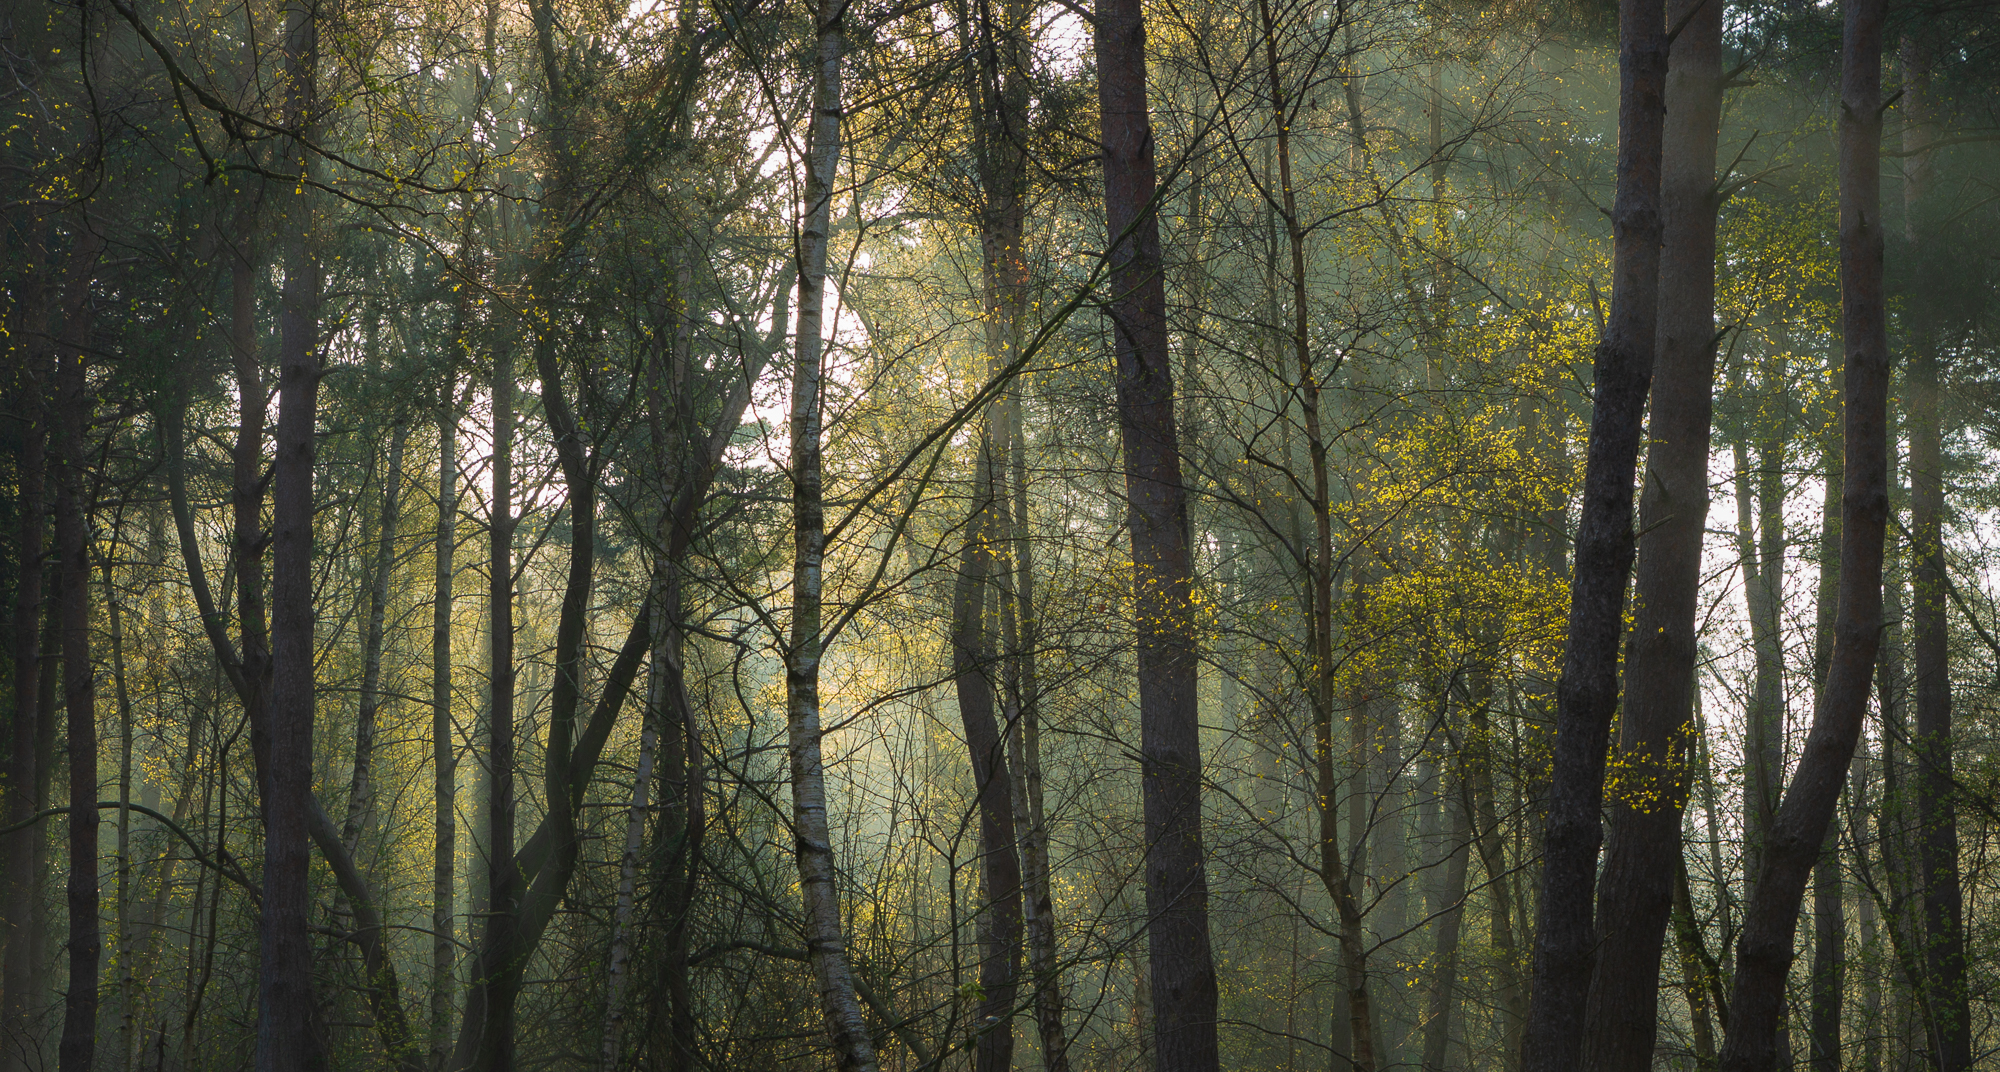 Solemnity - Trees in a woodland at sunrise. with light and subtle dancing light